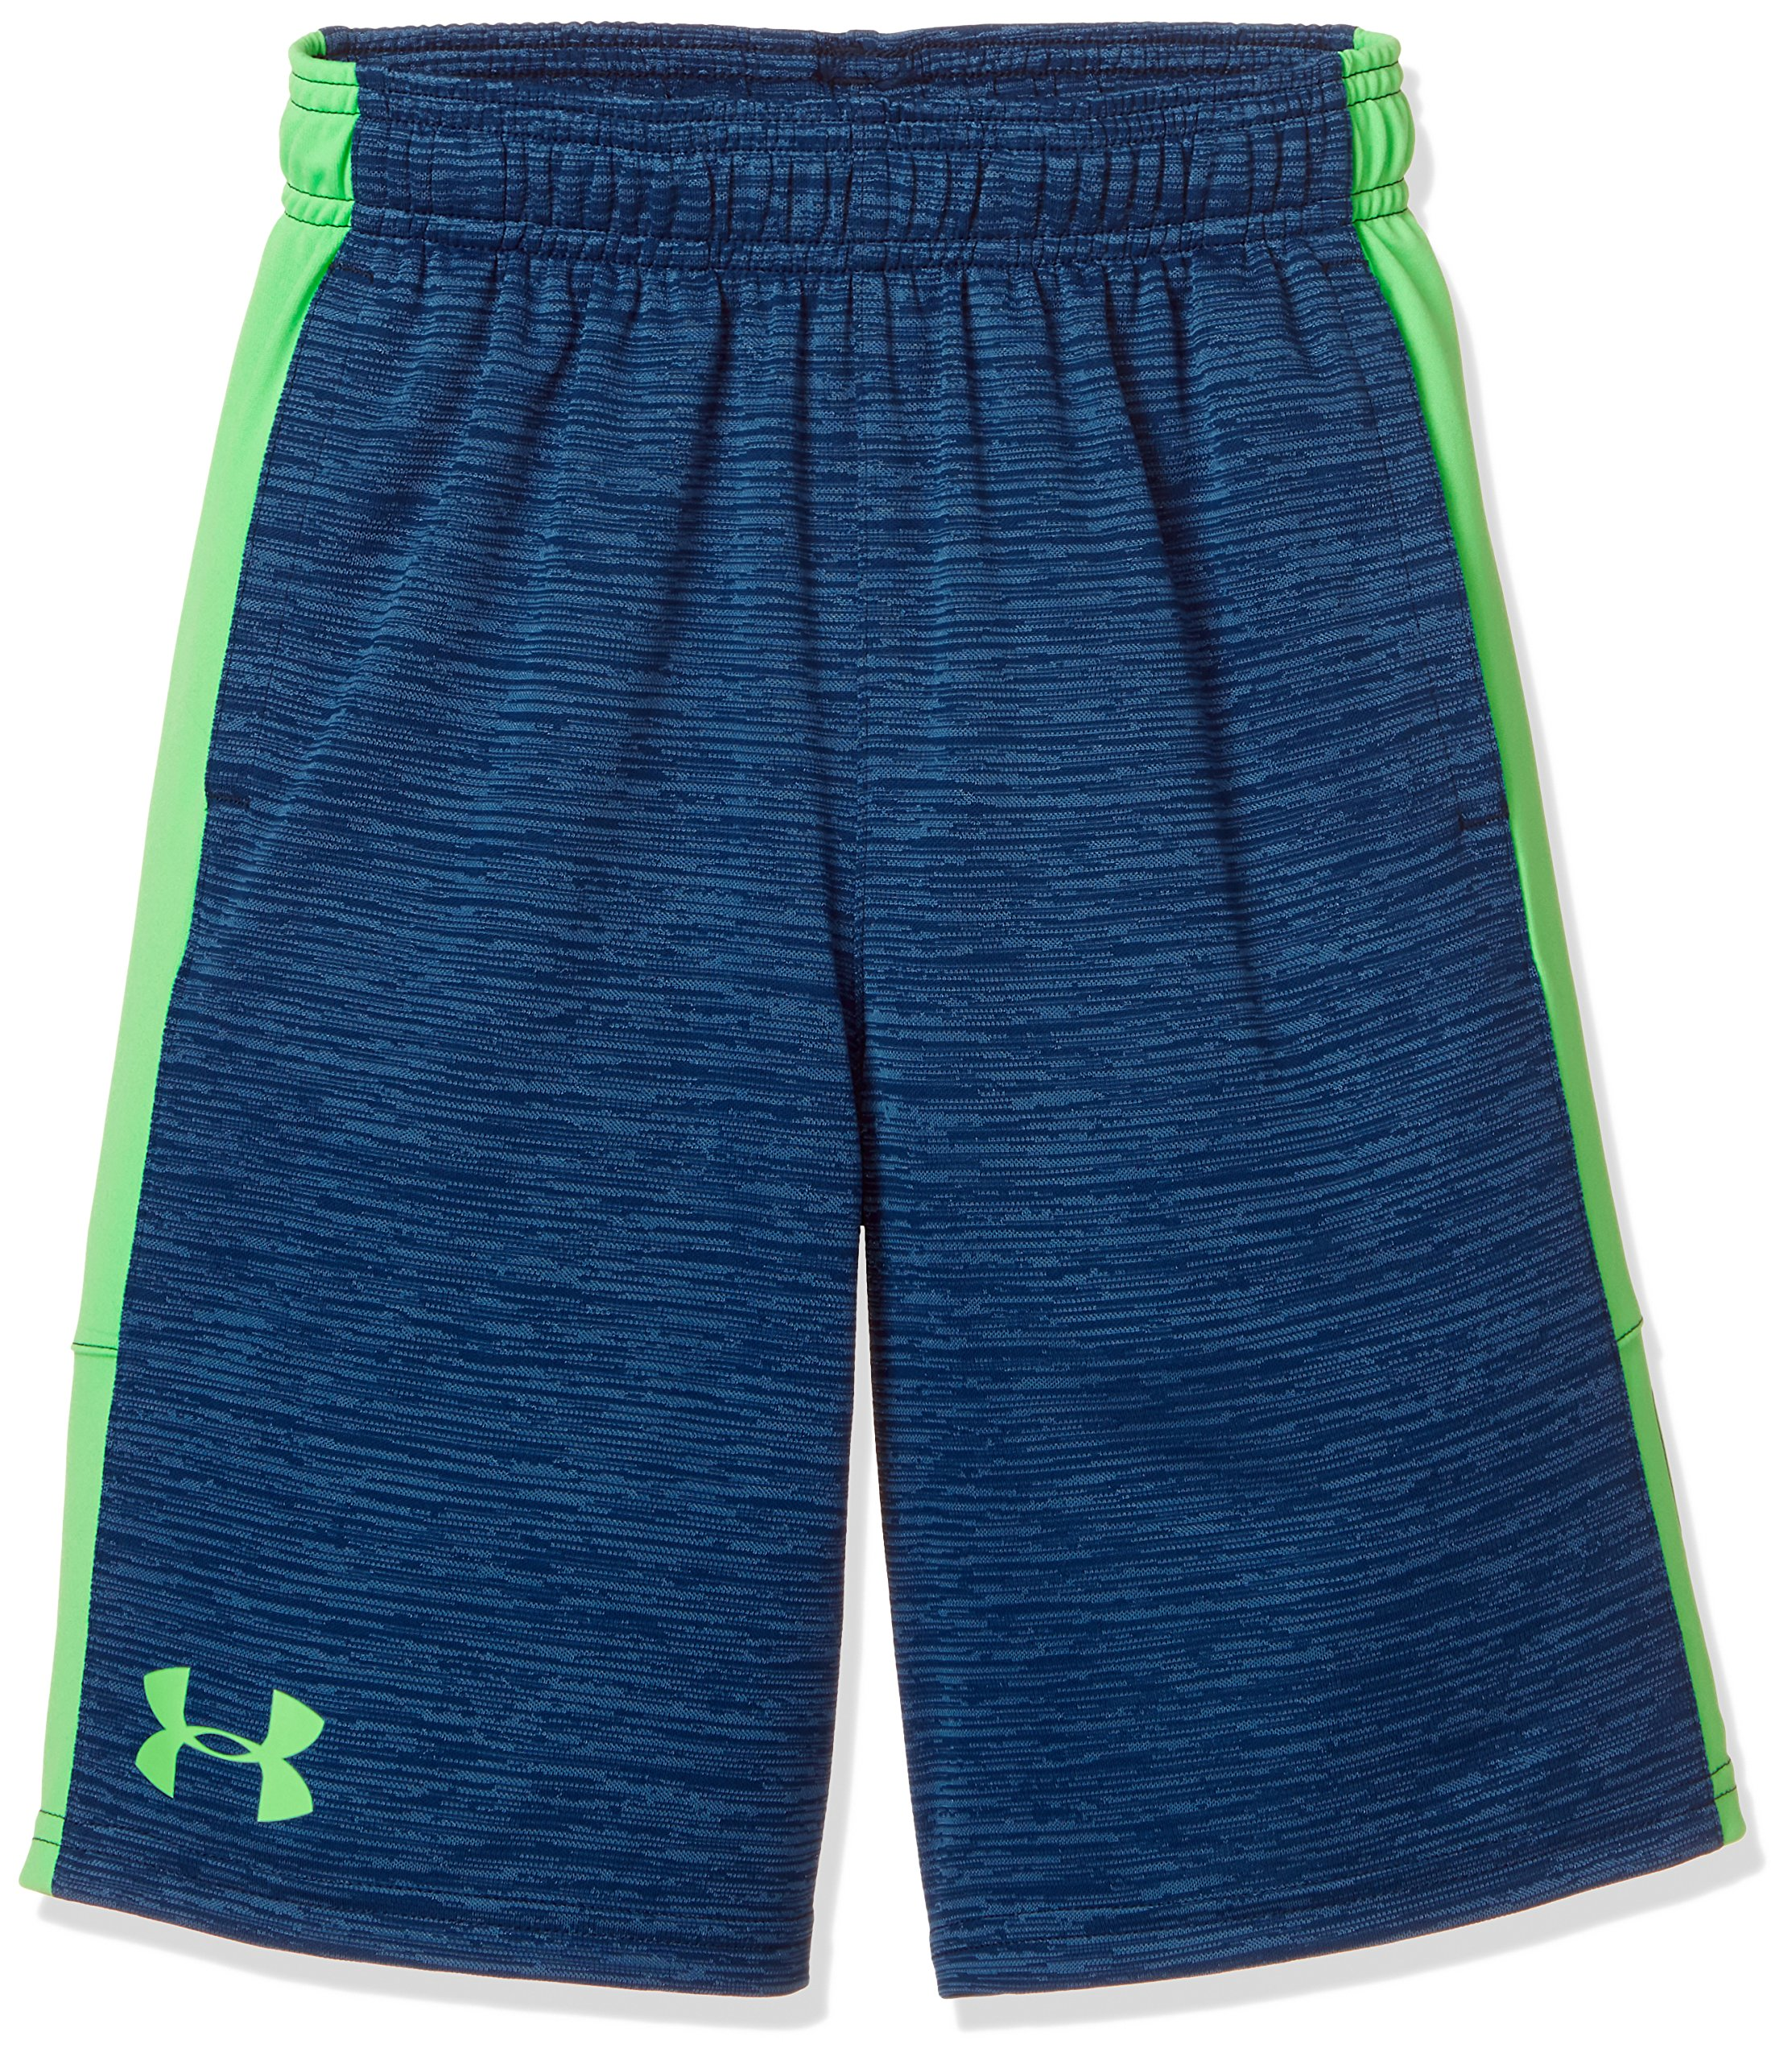 Under Armour Boys Stunt Printed Short, Blue/Green/Blue, YM by Under Armour